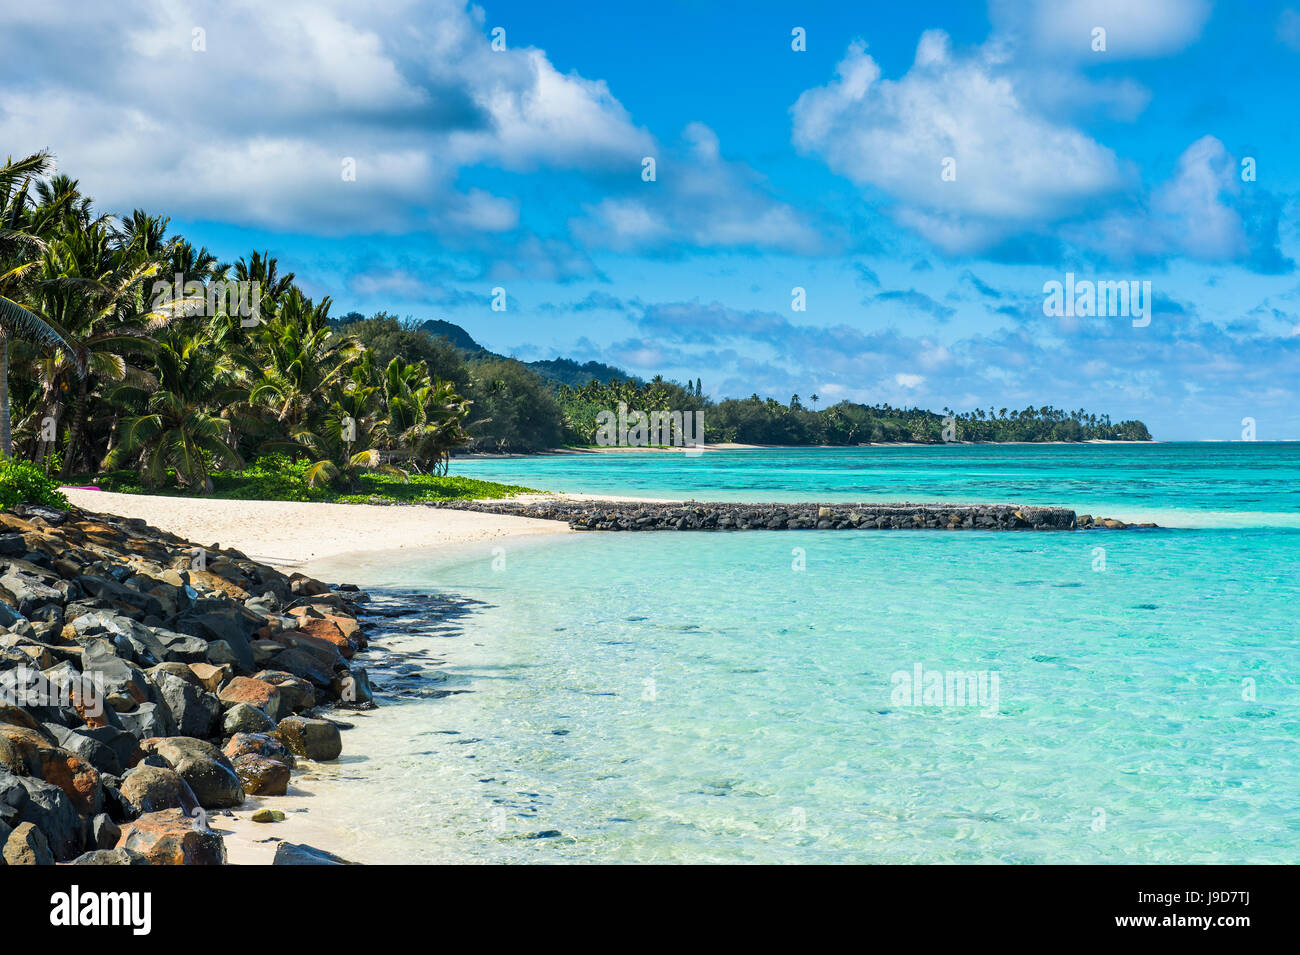 White sand beach and turquoise waters, Rarotonga and the Cook Islands, South Pacific, Pacific - Stock Image